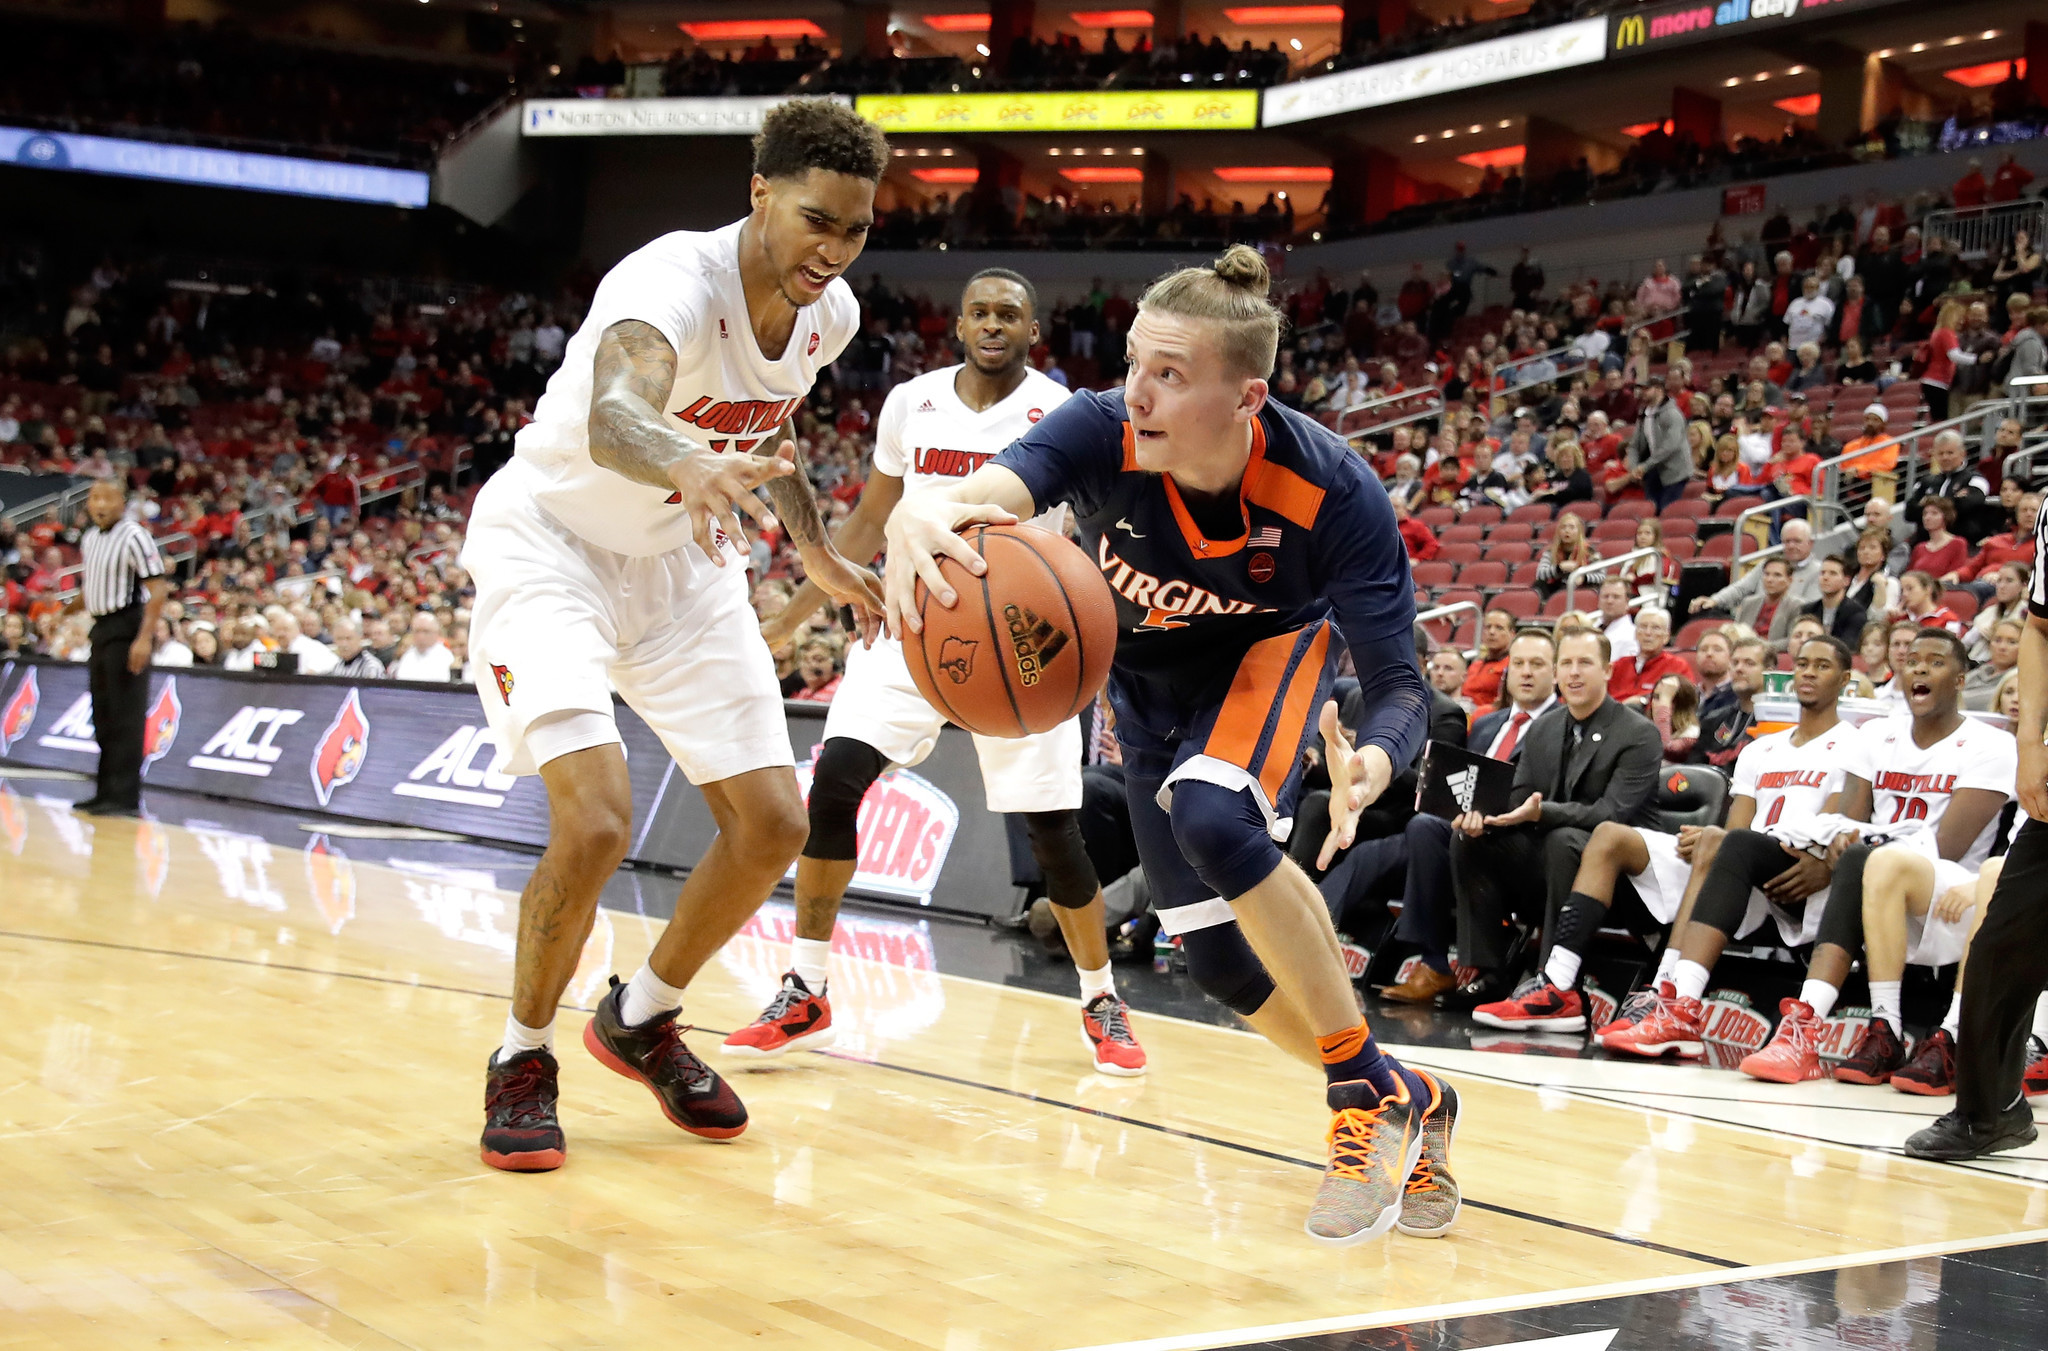 As Jack Salt plays in his last home game the redshirt senior has already left his legacy on Virginia Basketball The Kiwi big man made an impact on and off the court